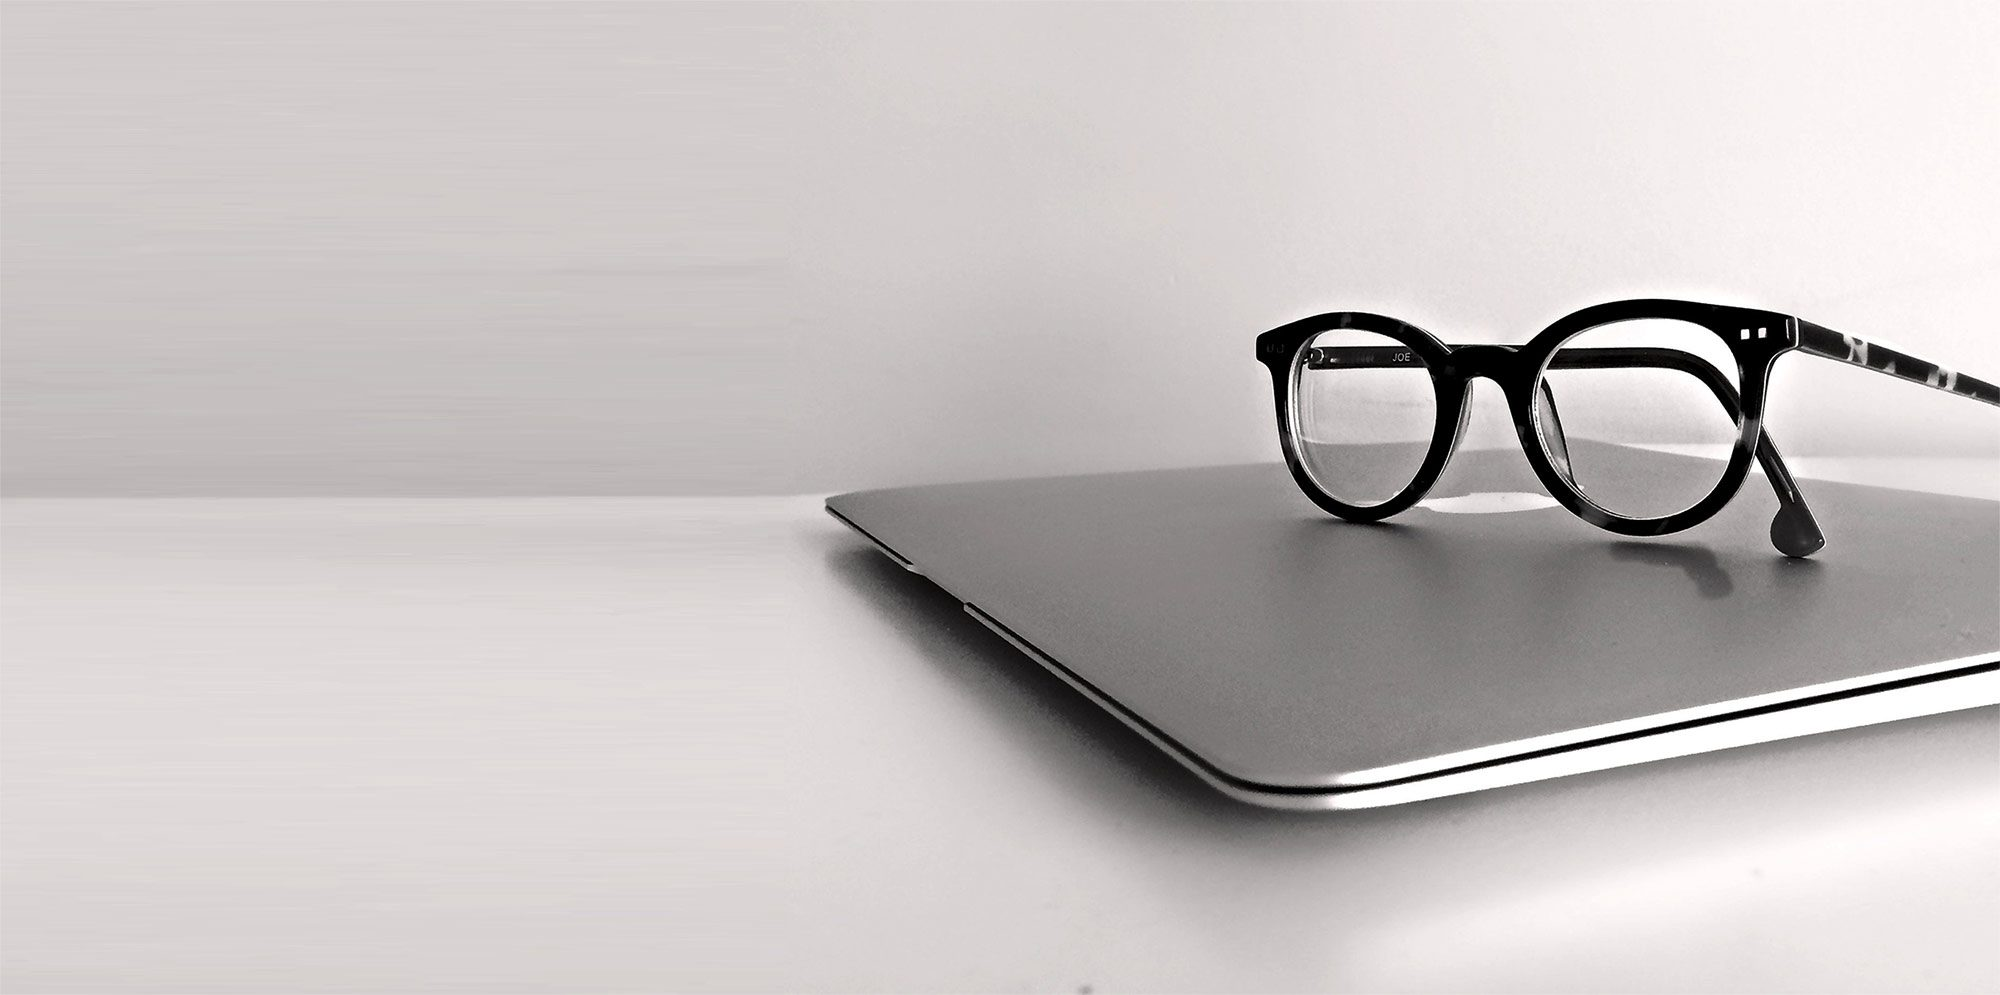 Laptop with reading glasses on top